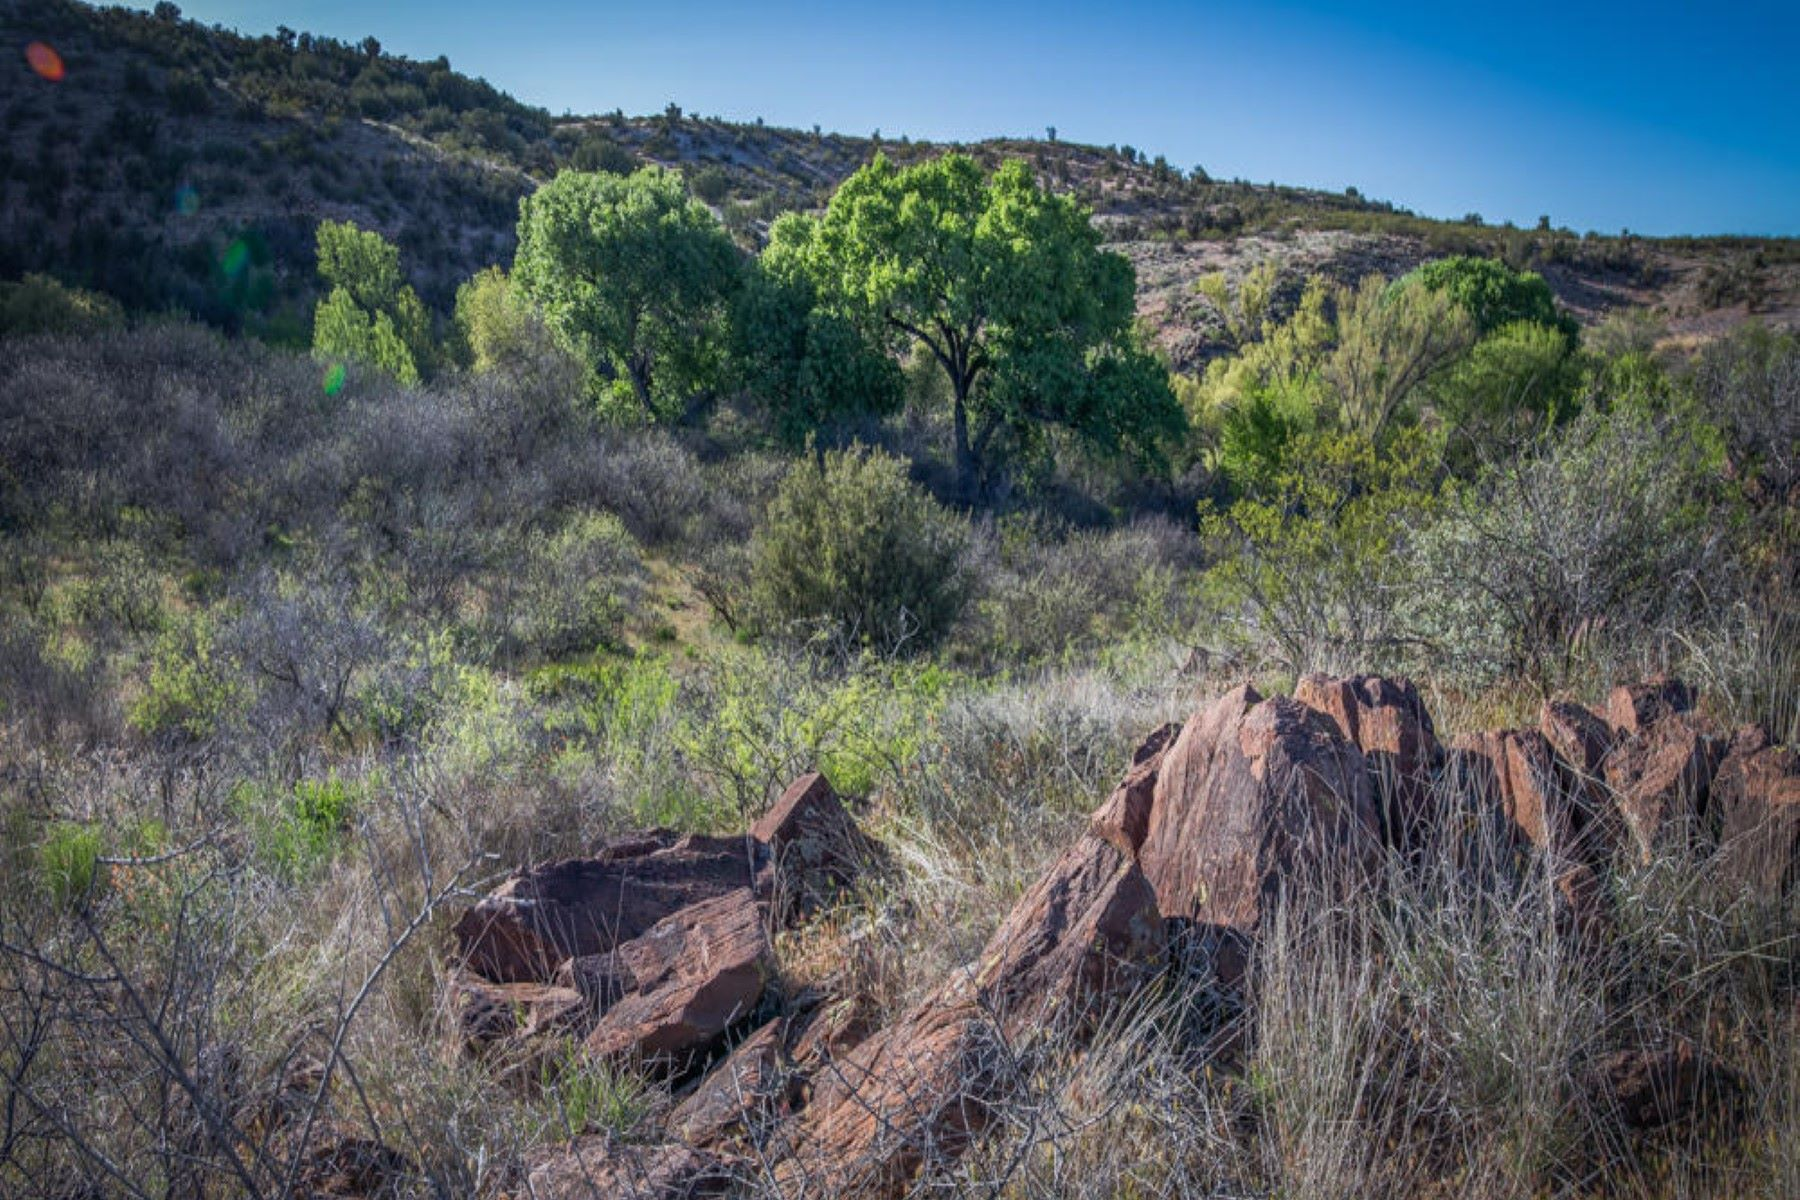 Terreno por un Venta en 131 Acres surrounded by Forest Service and State Trust Land 11025 E Waddell Rd, Cornville, Arizona, 86325 Estados Unidos